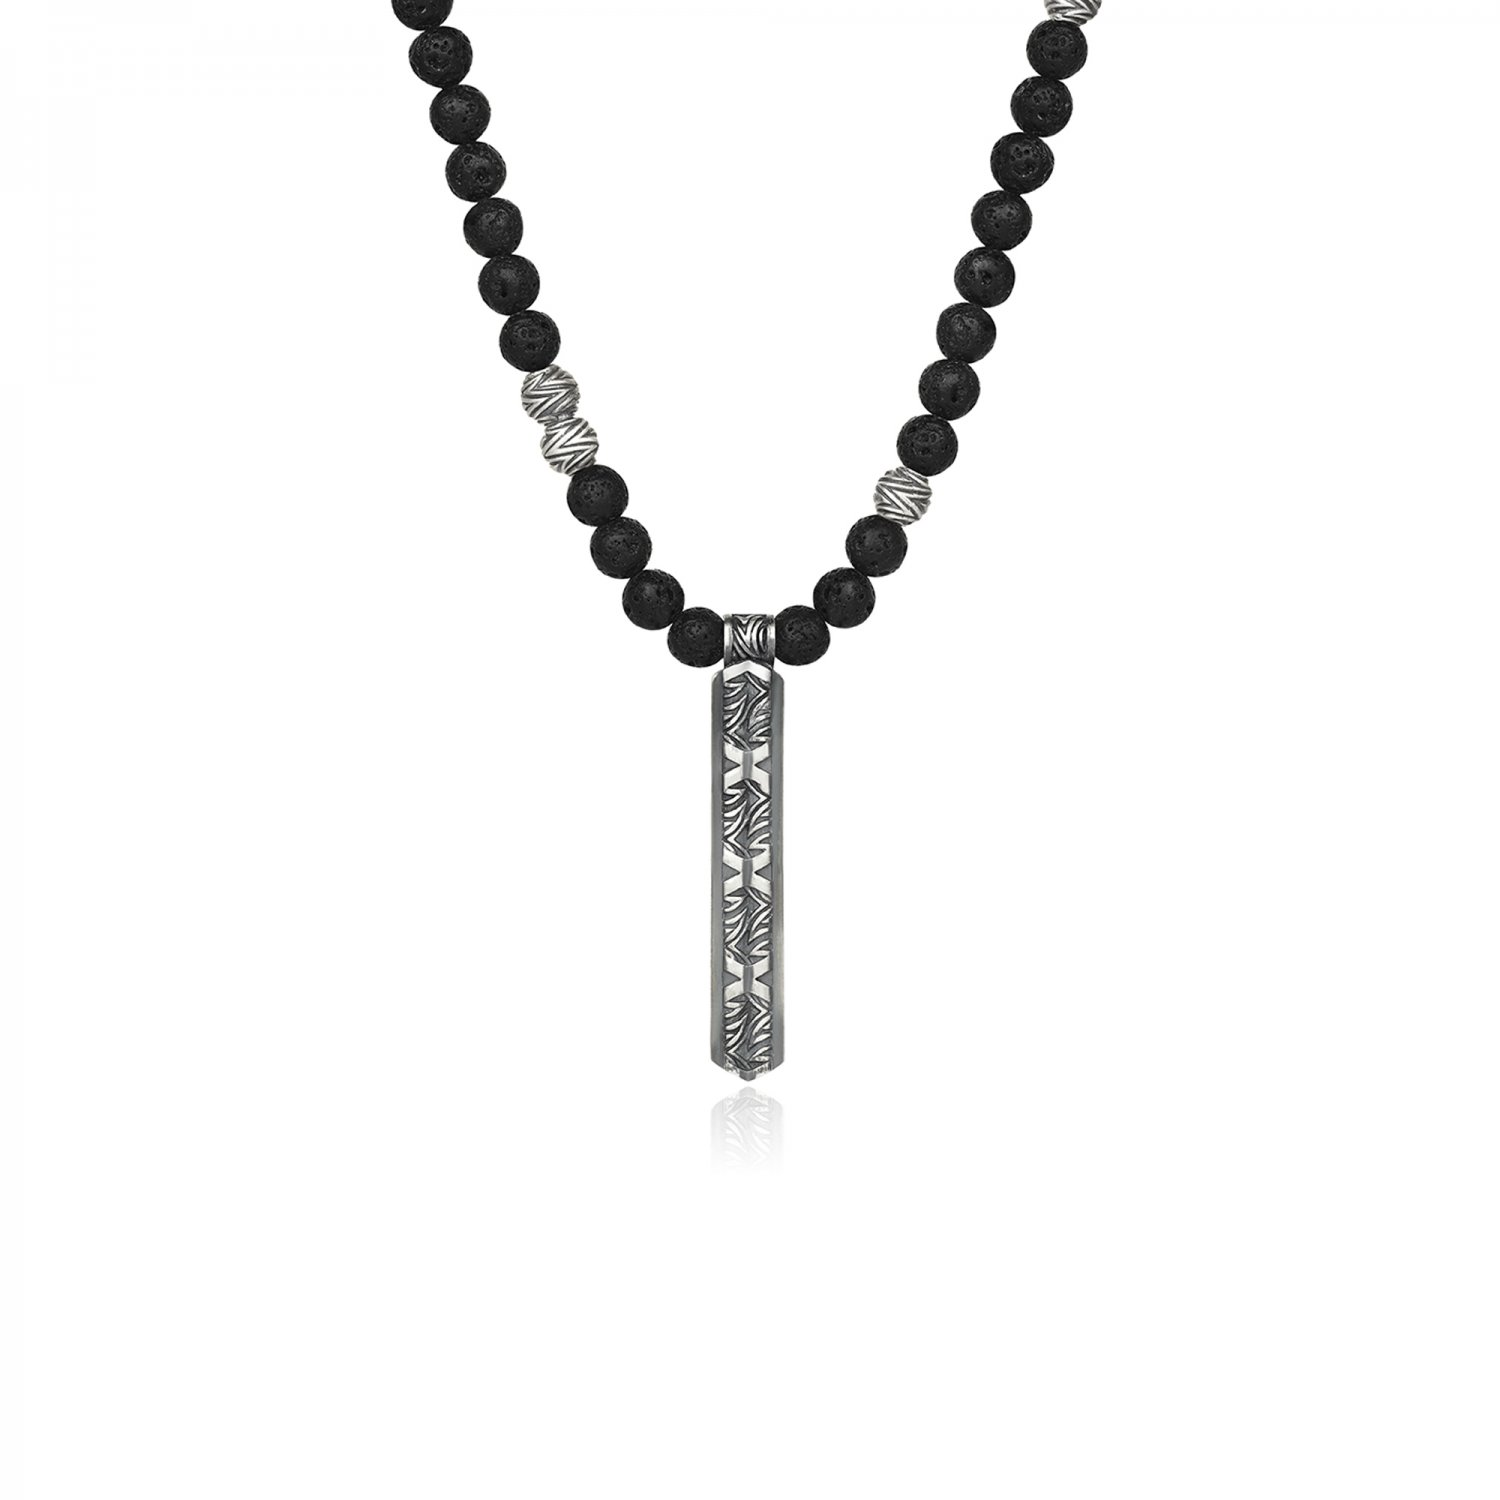 Oxidised Silver Serpi Lava Beads Necklace